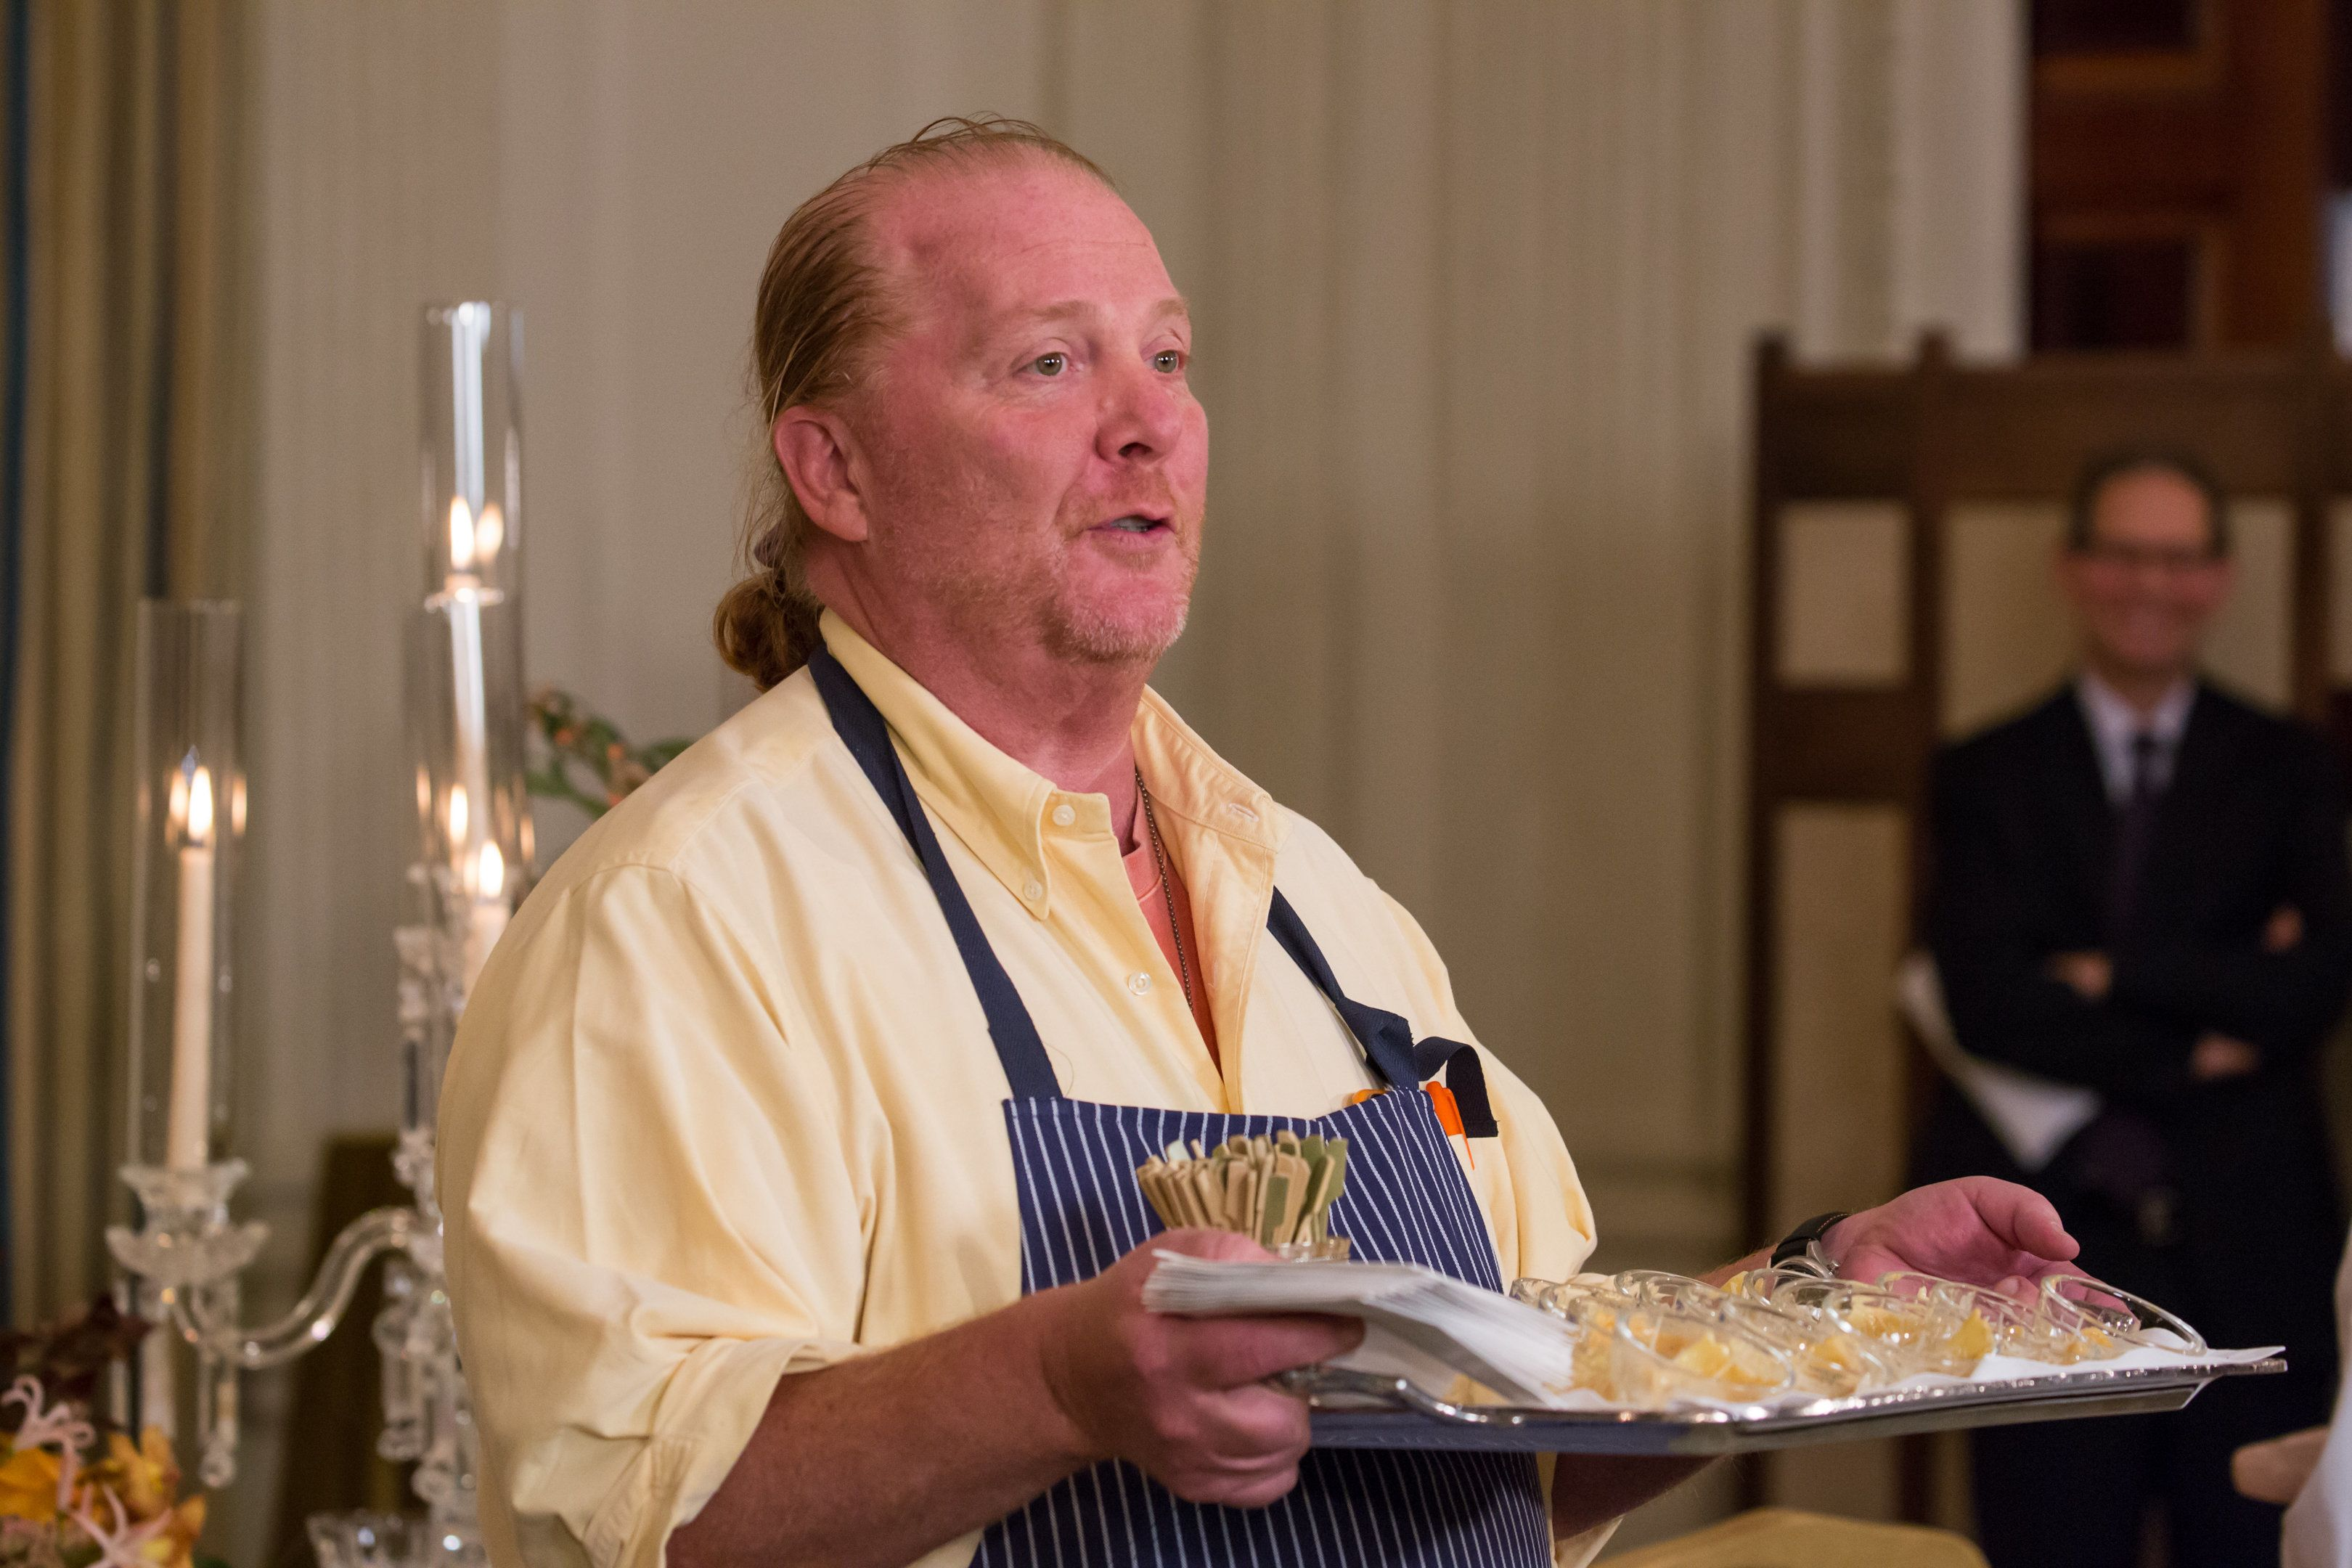 Mario Batali in the White House in 2016.